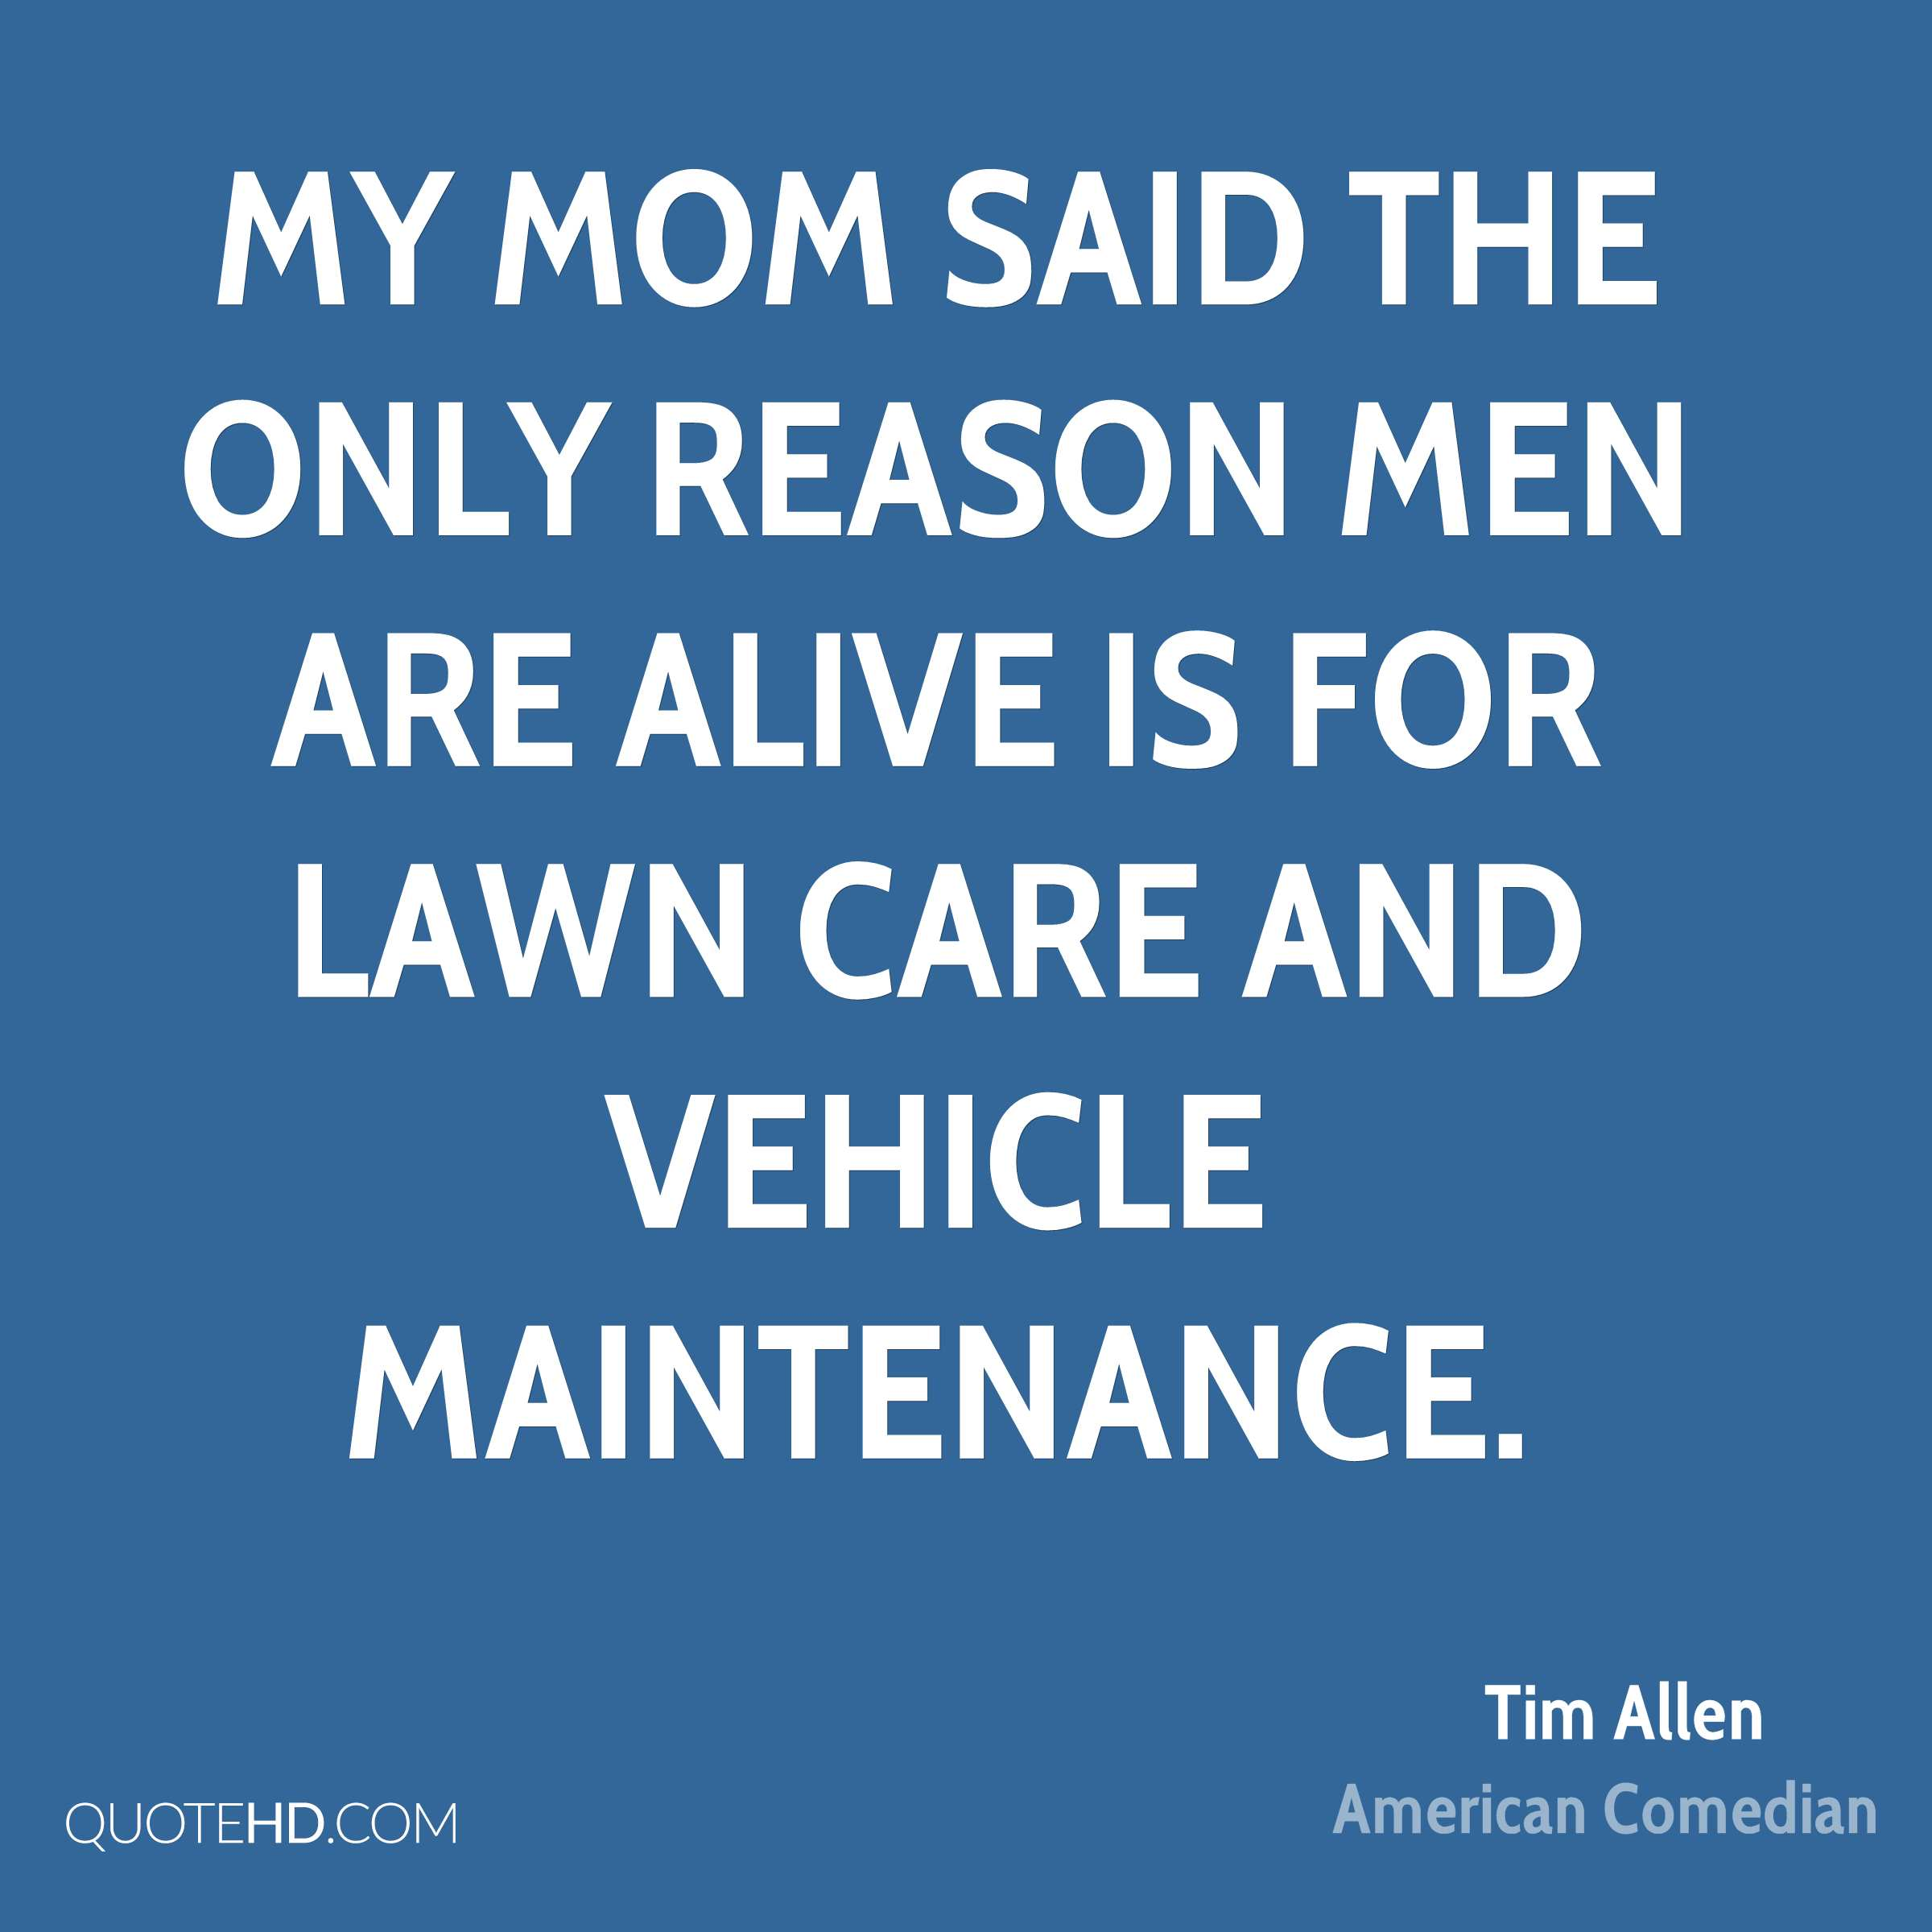 Tim allen mom quotes quotehd for Lawn care and maintenance